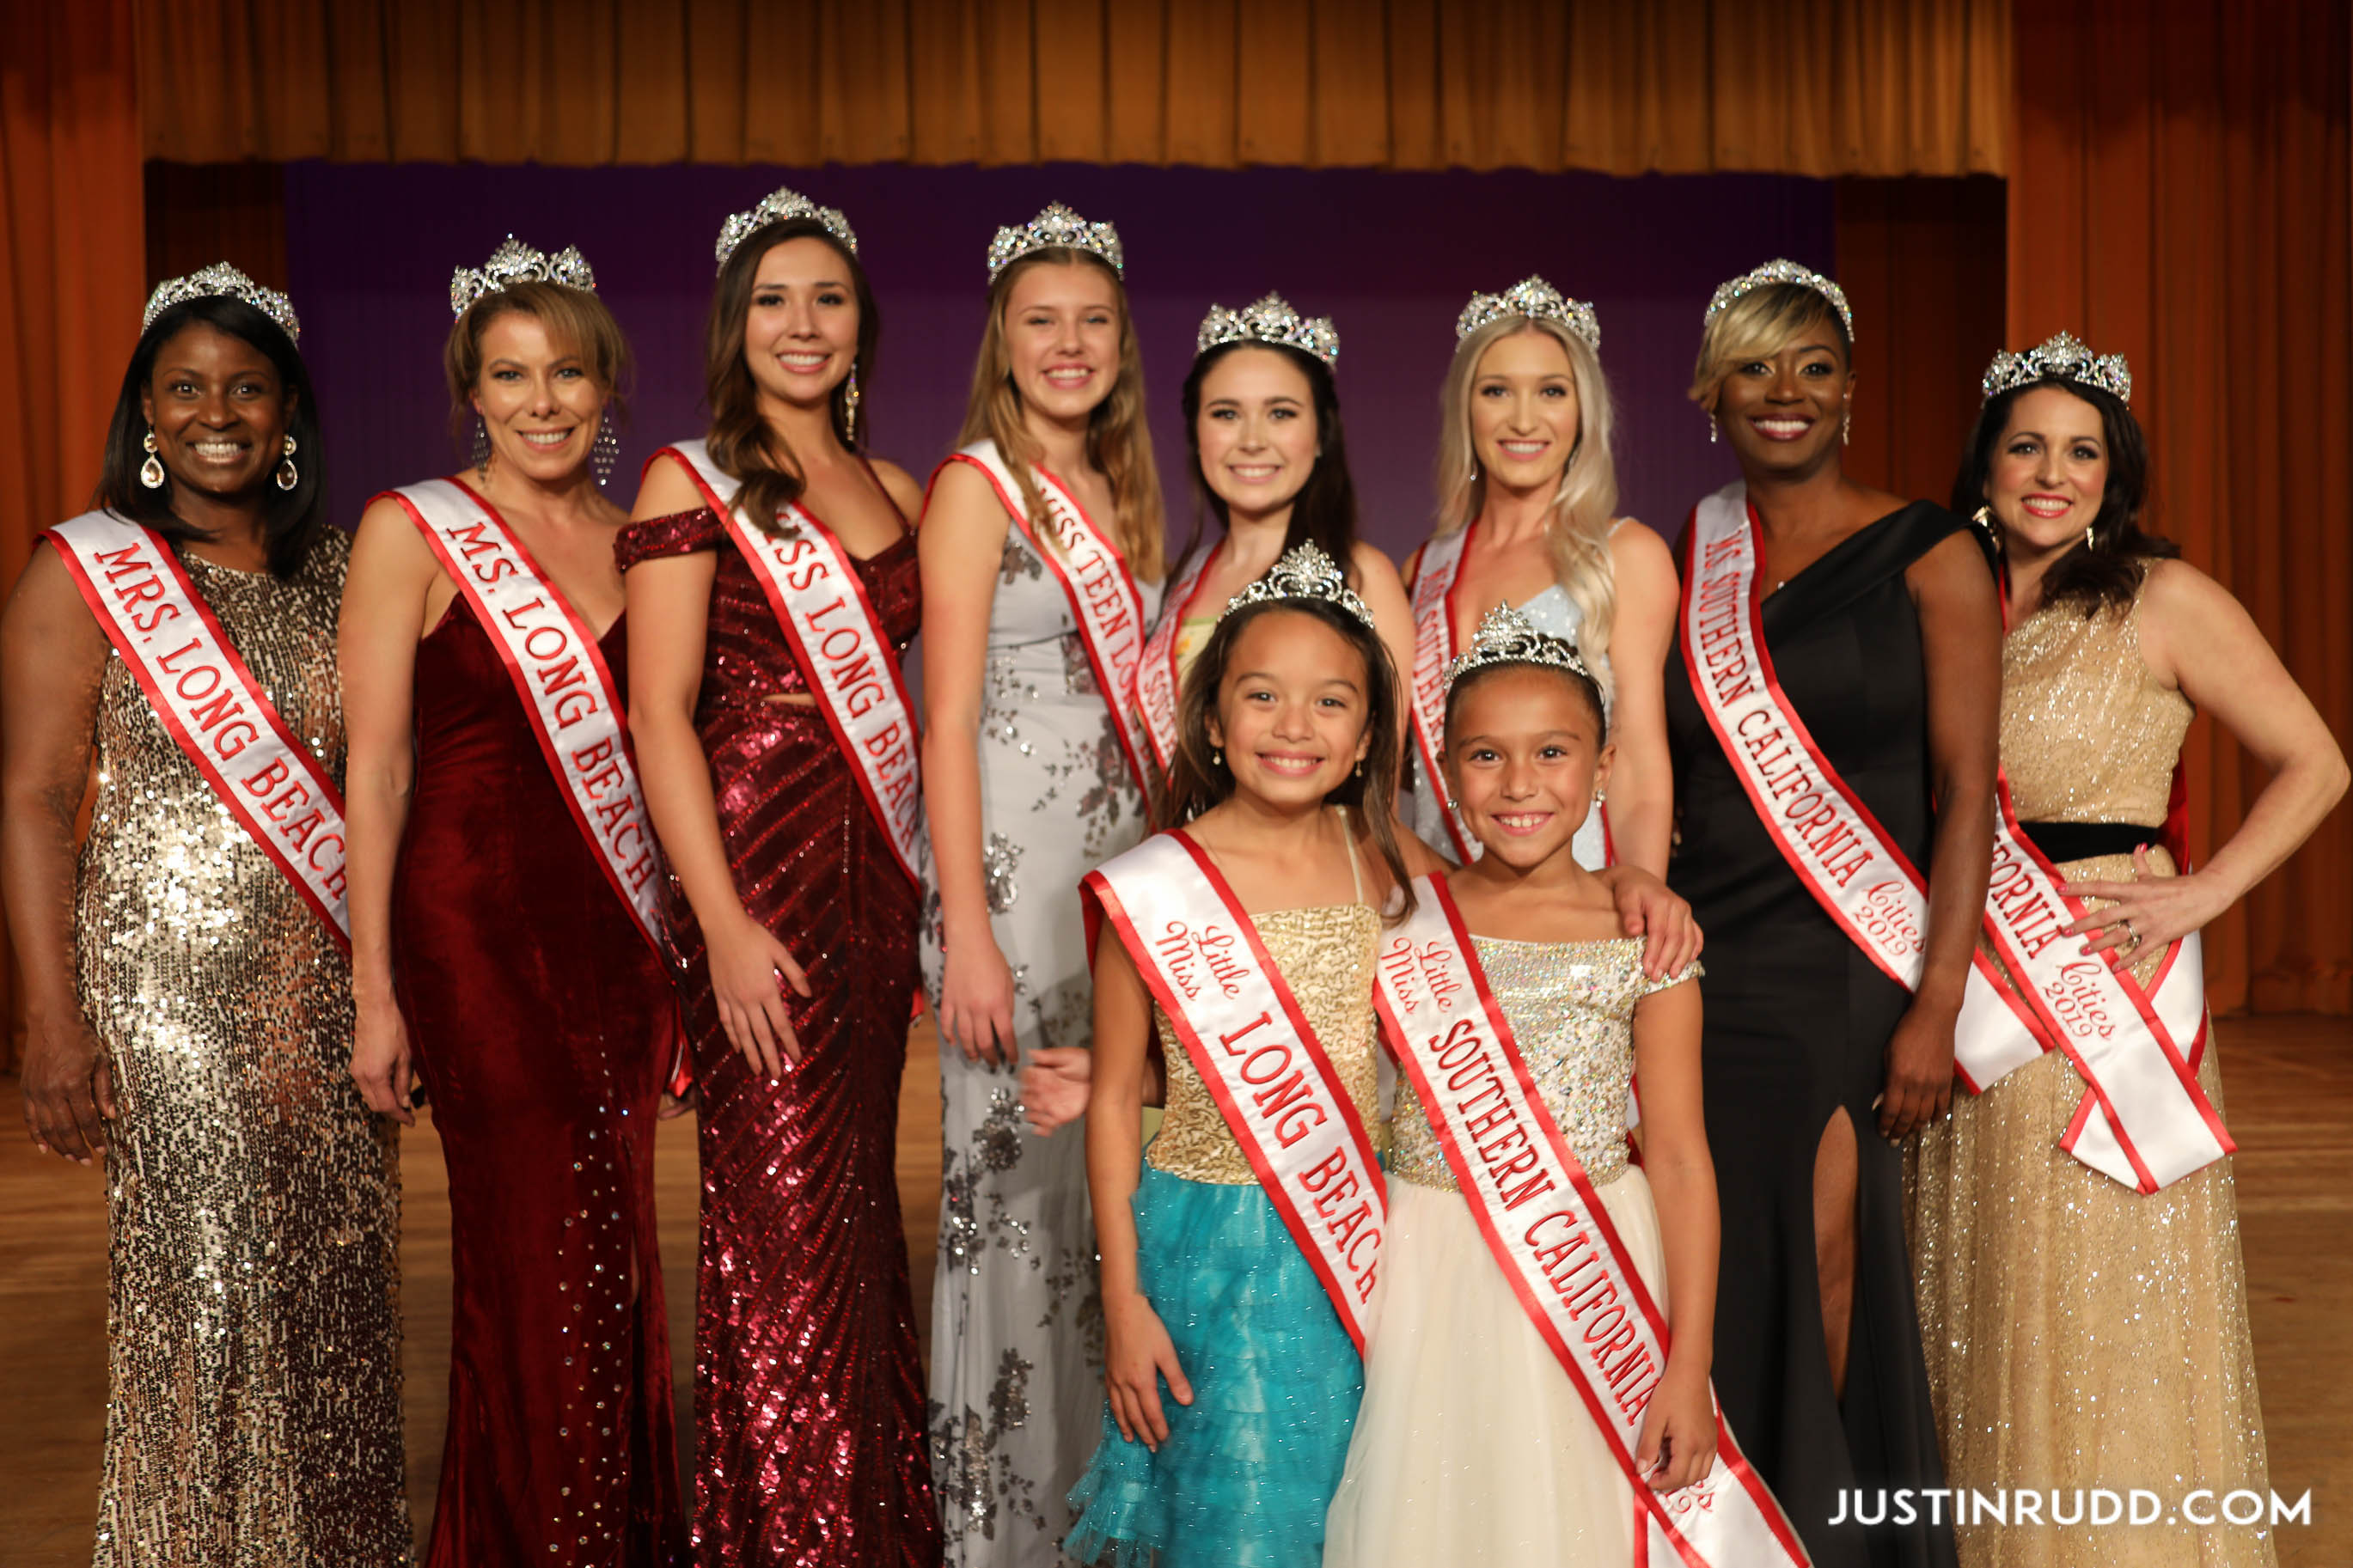 pageant junior nudist contest teen nudists 7